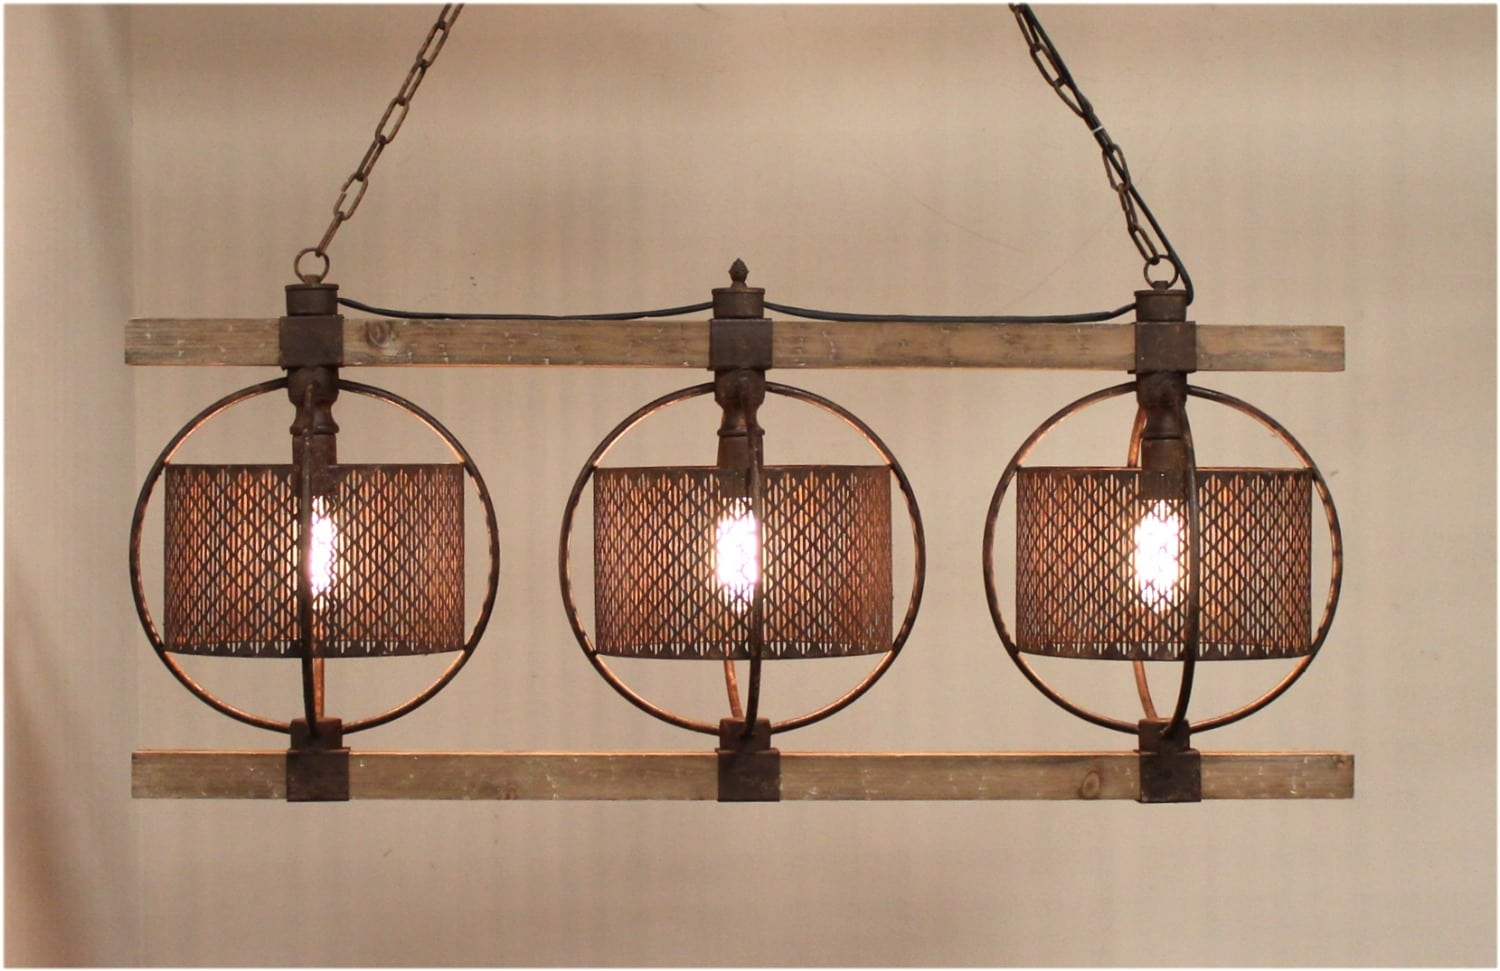 Old wood with rusty barrels three light chandelier for kitchen or old wood with rusty barrels three light chandelier for kitchen or dining room the kings bay arubaitofo Choice Image